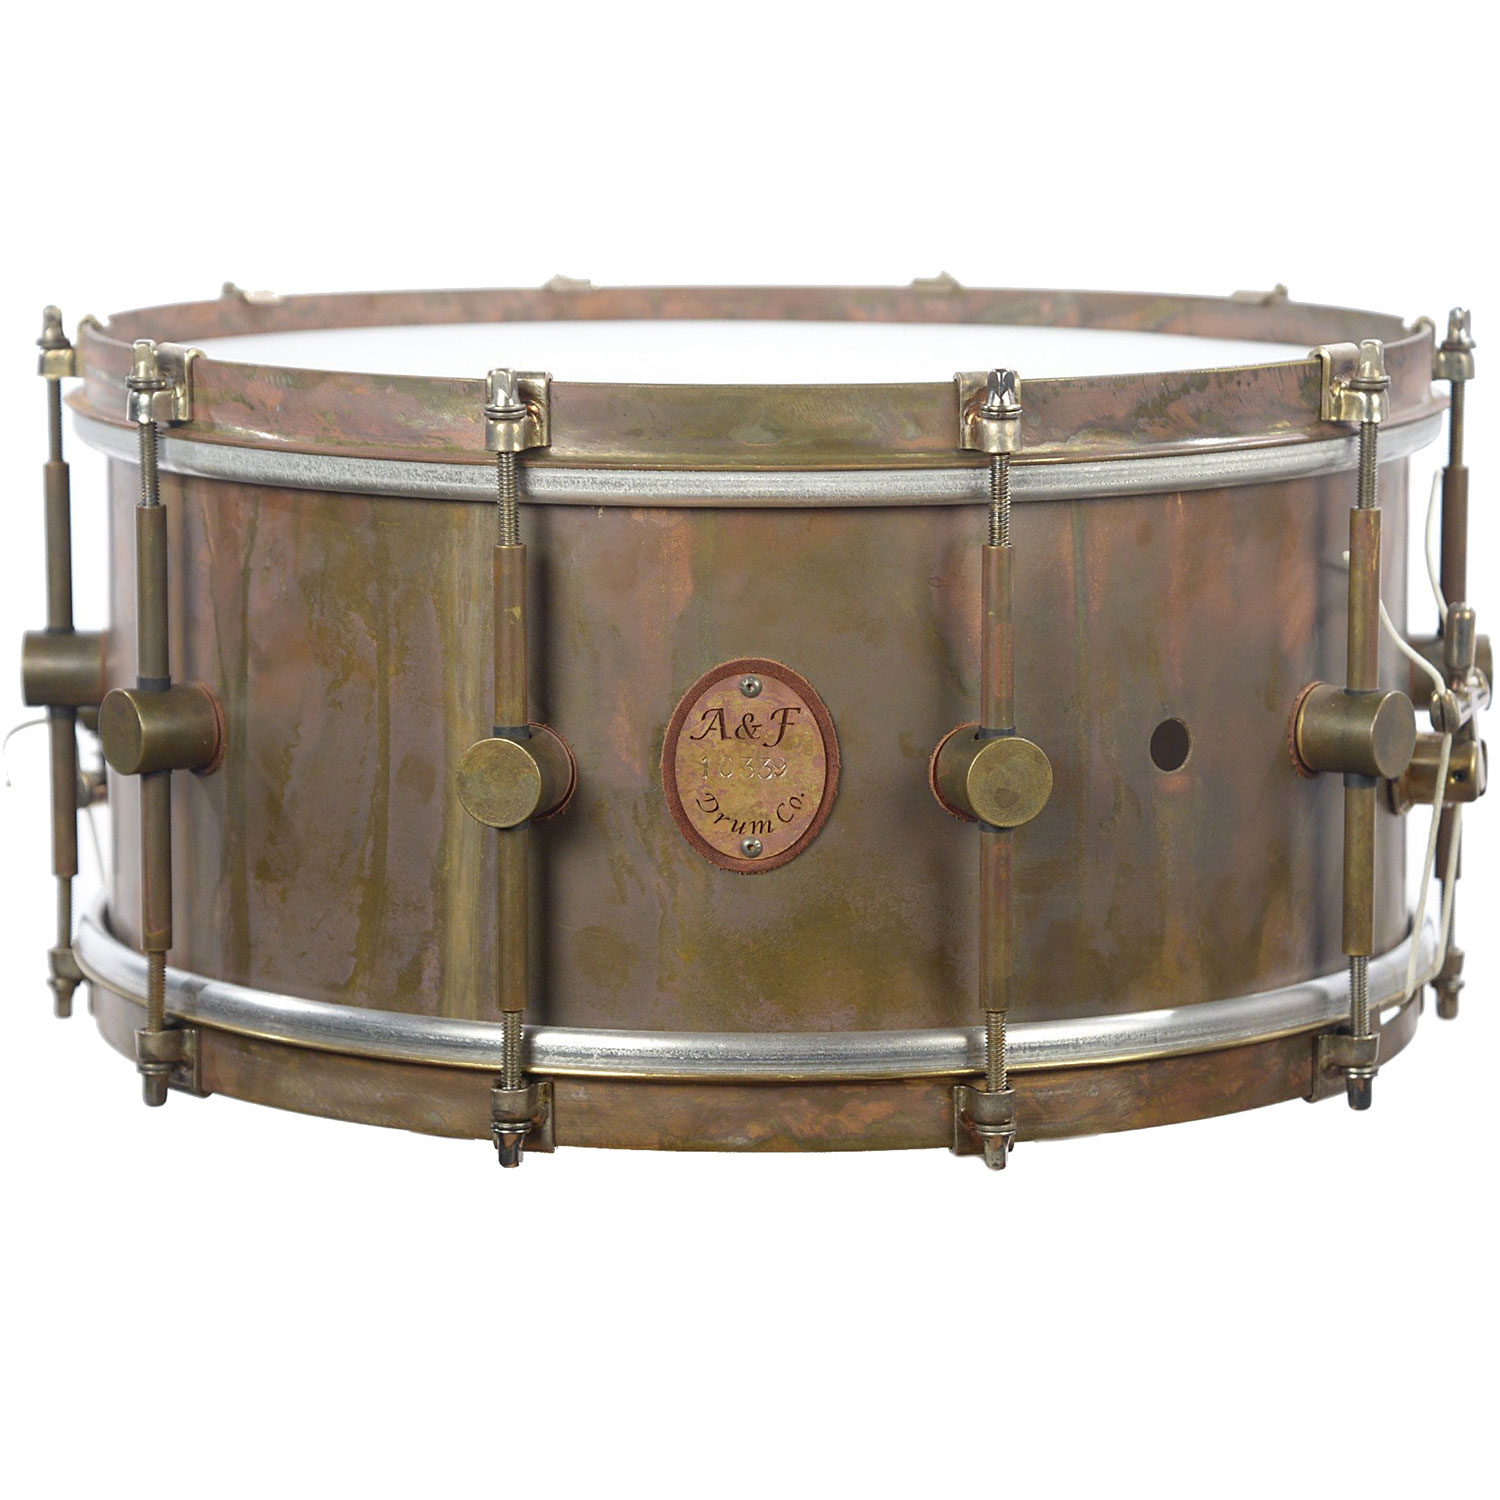 """A&F Drum Co. 6.5"""" x 14"""" Standard Snare Drum"""